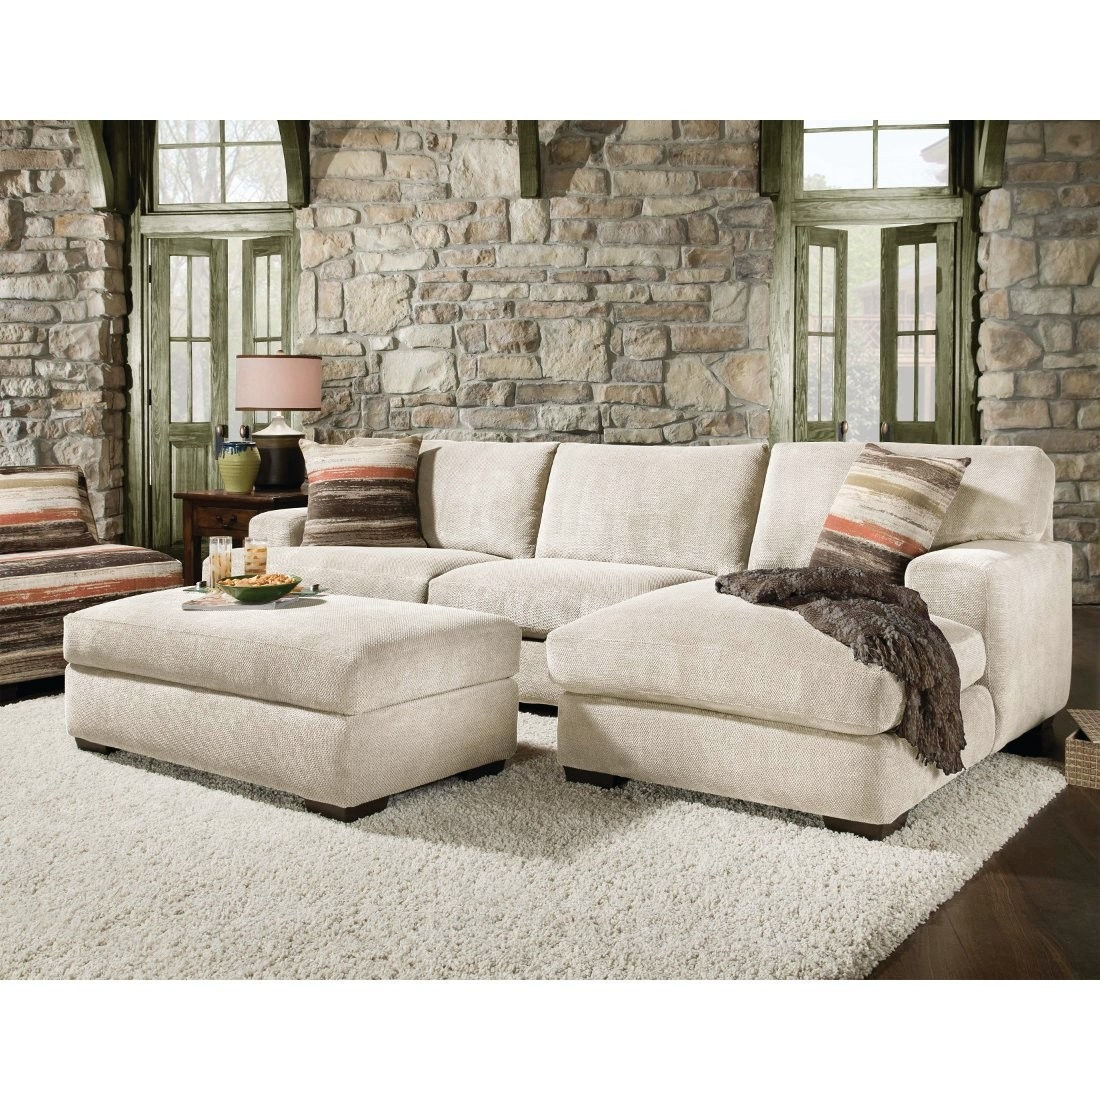 Corinthian Mead Sectional Sofa Piece Cream 48a3lf Conns Within Corinthian Sectional Sofas (#5 of 12)